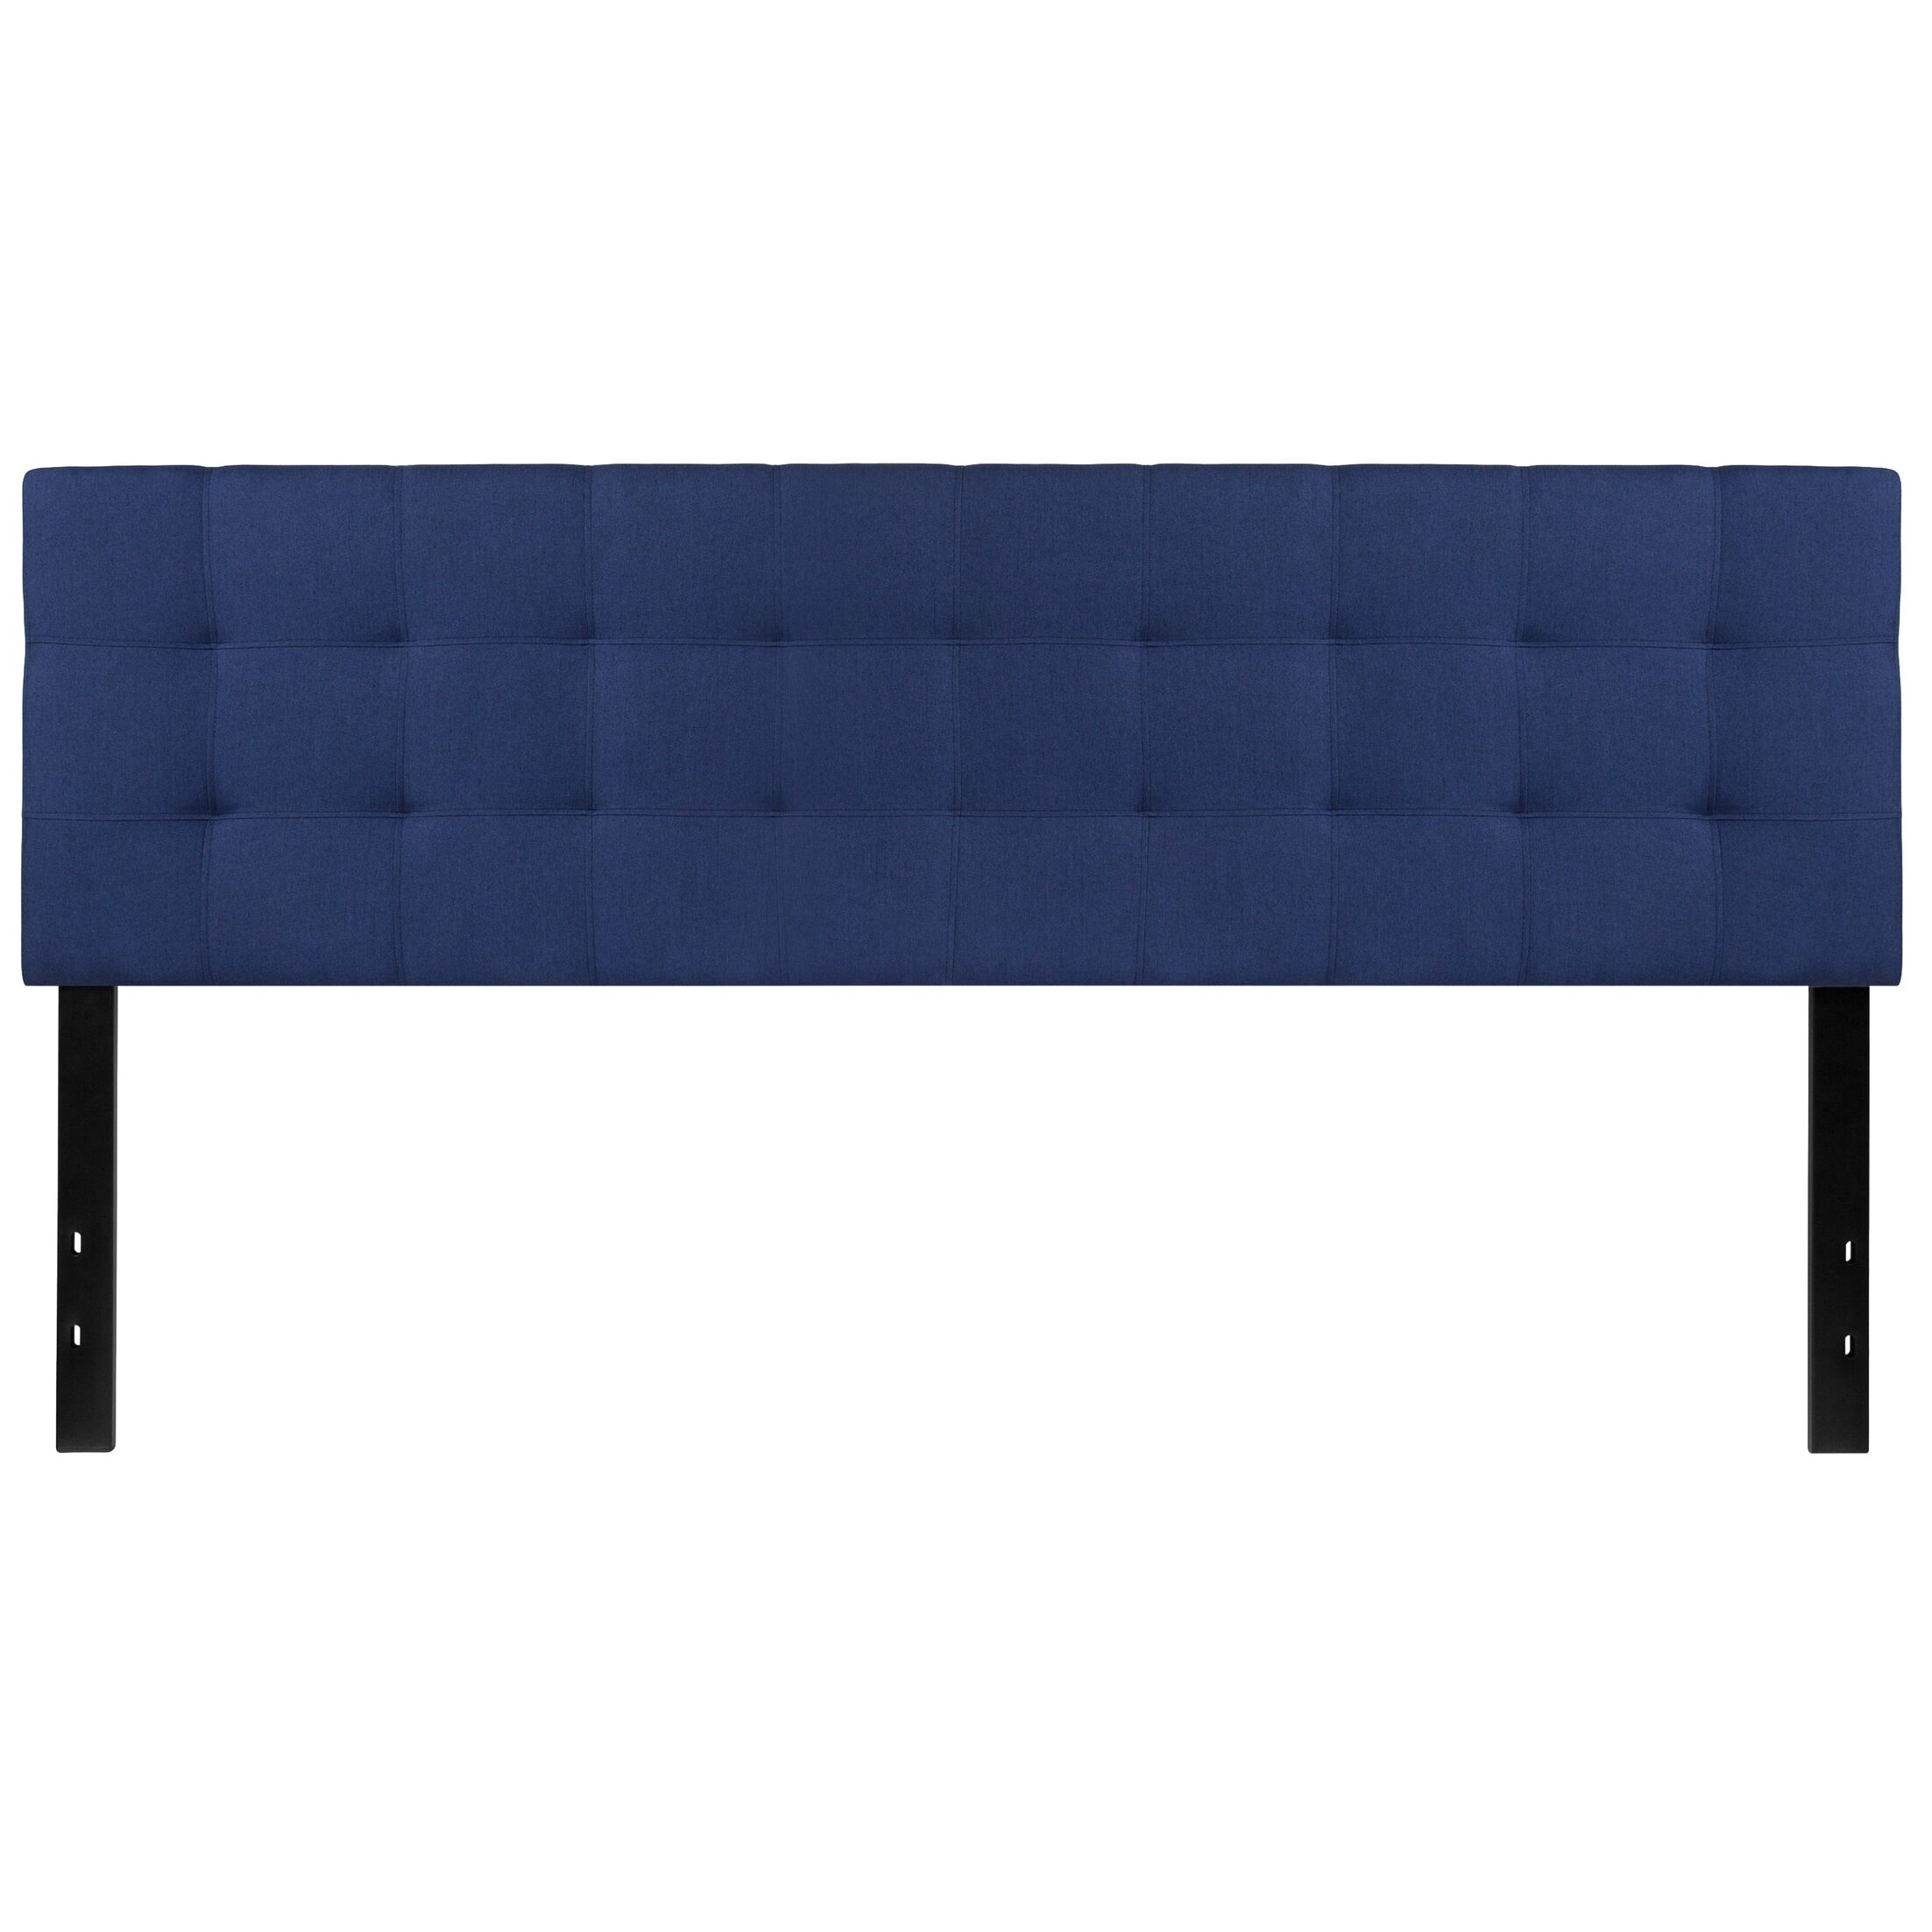 Fitzgibbon Bedford Tufted Upholstered Panel Headboard Upholstery: Navy, Size: Queen